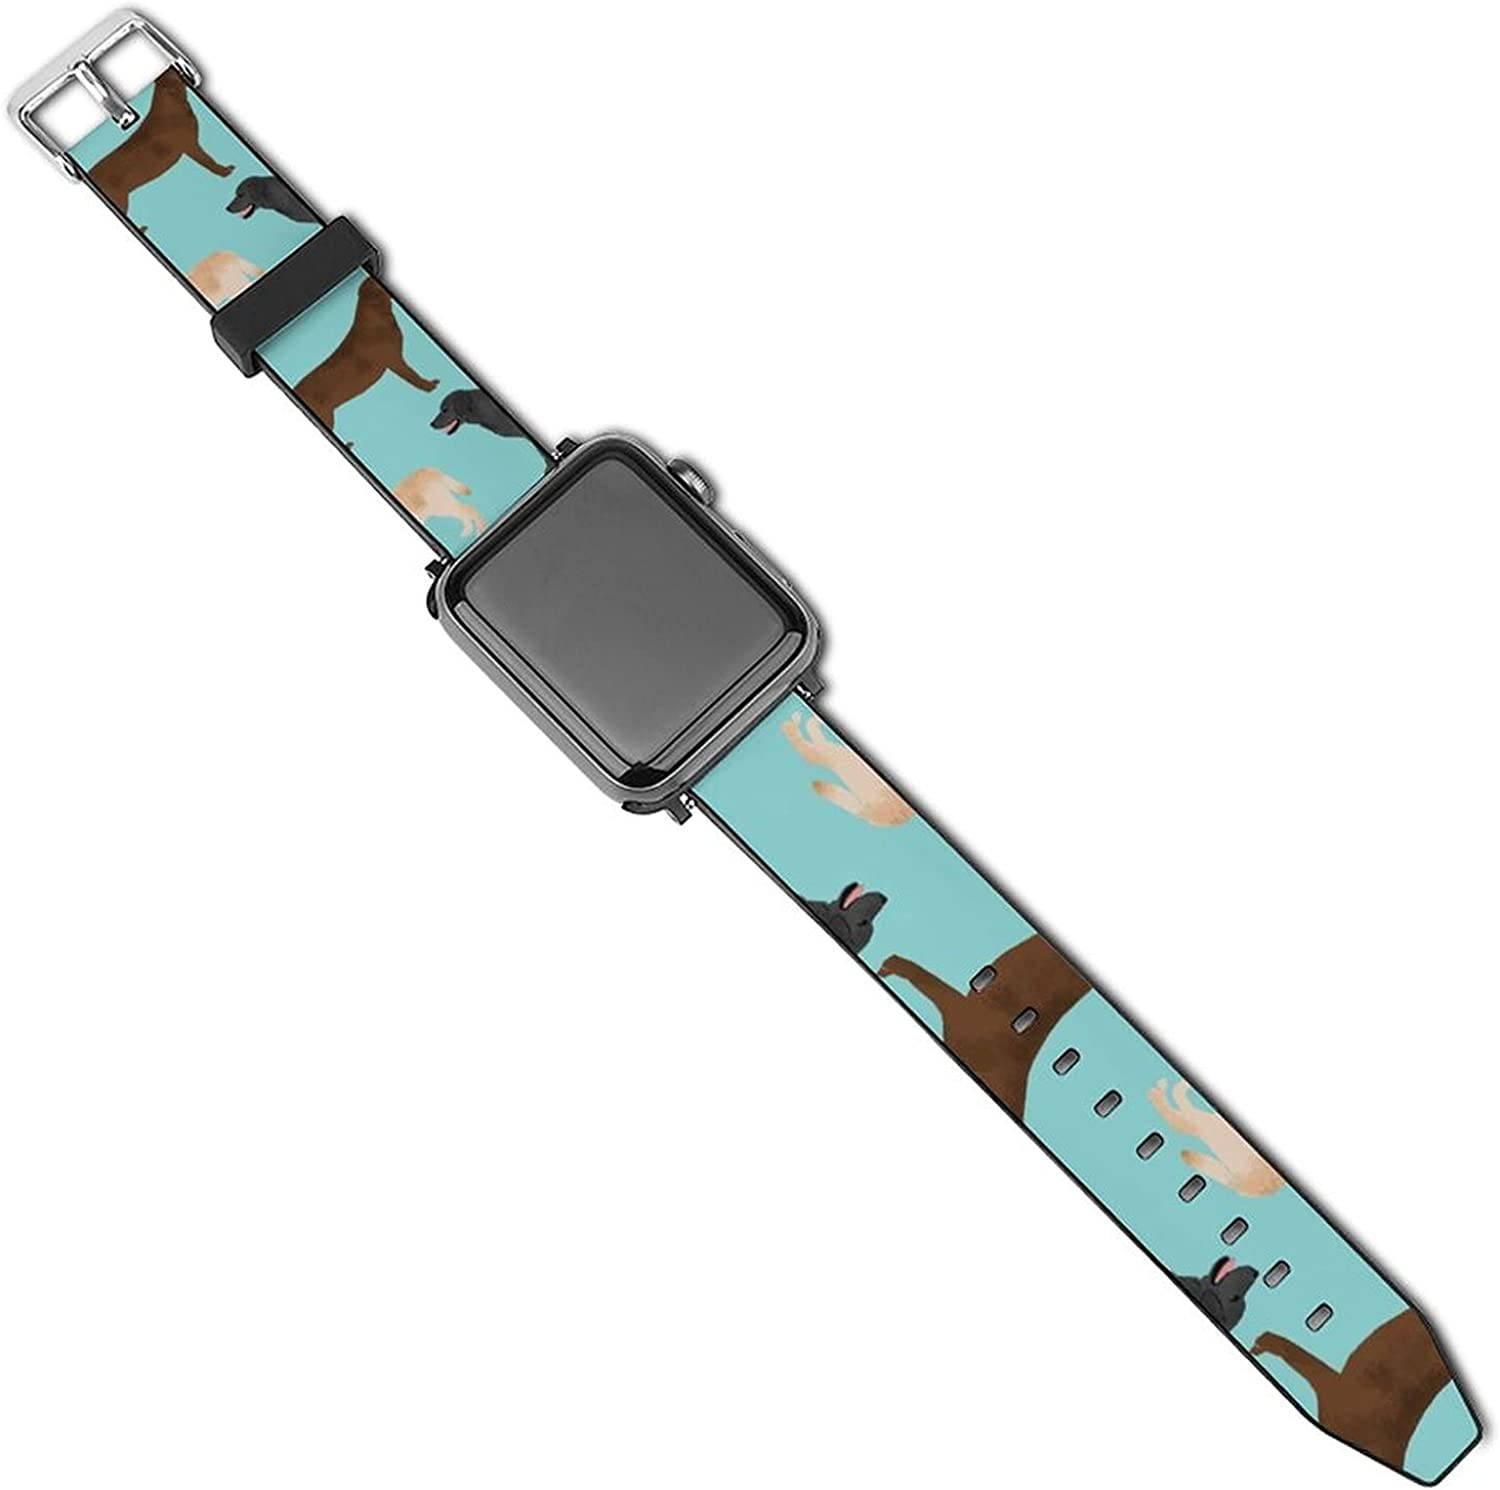 Replacement Band Compatible with Apple Watch Band Series 5/4/3/2/1, Soft Waterproof PU Leather Strap Wristband Compatible with iWatch 38mm 40mm 42mm 44mm